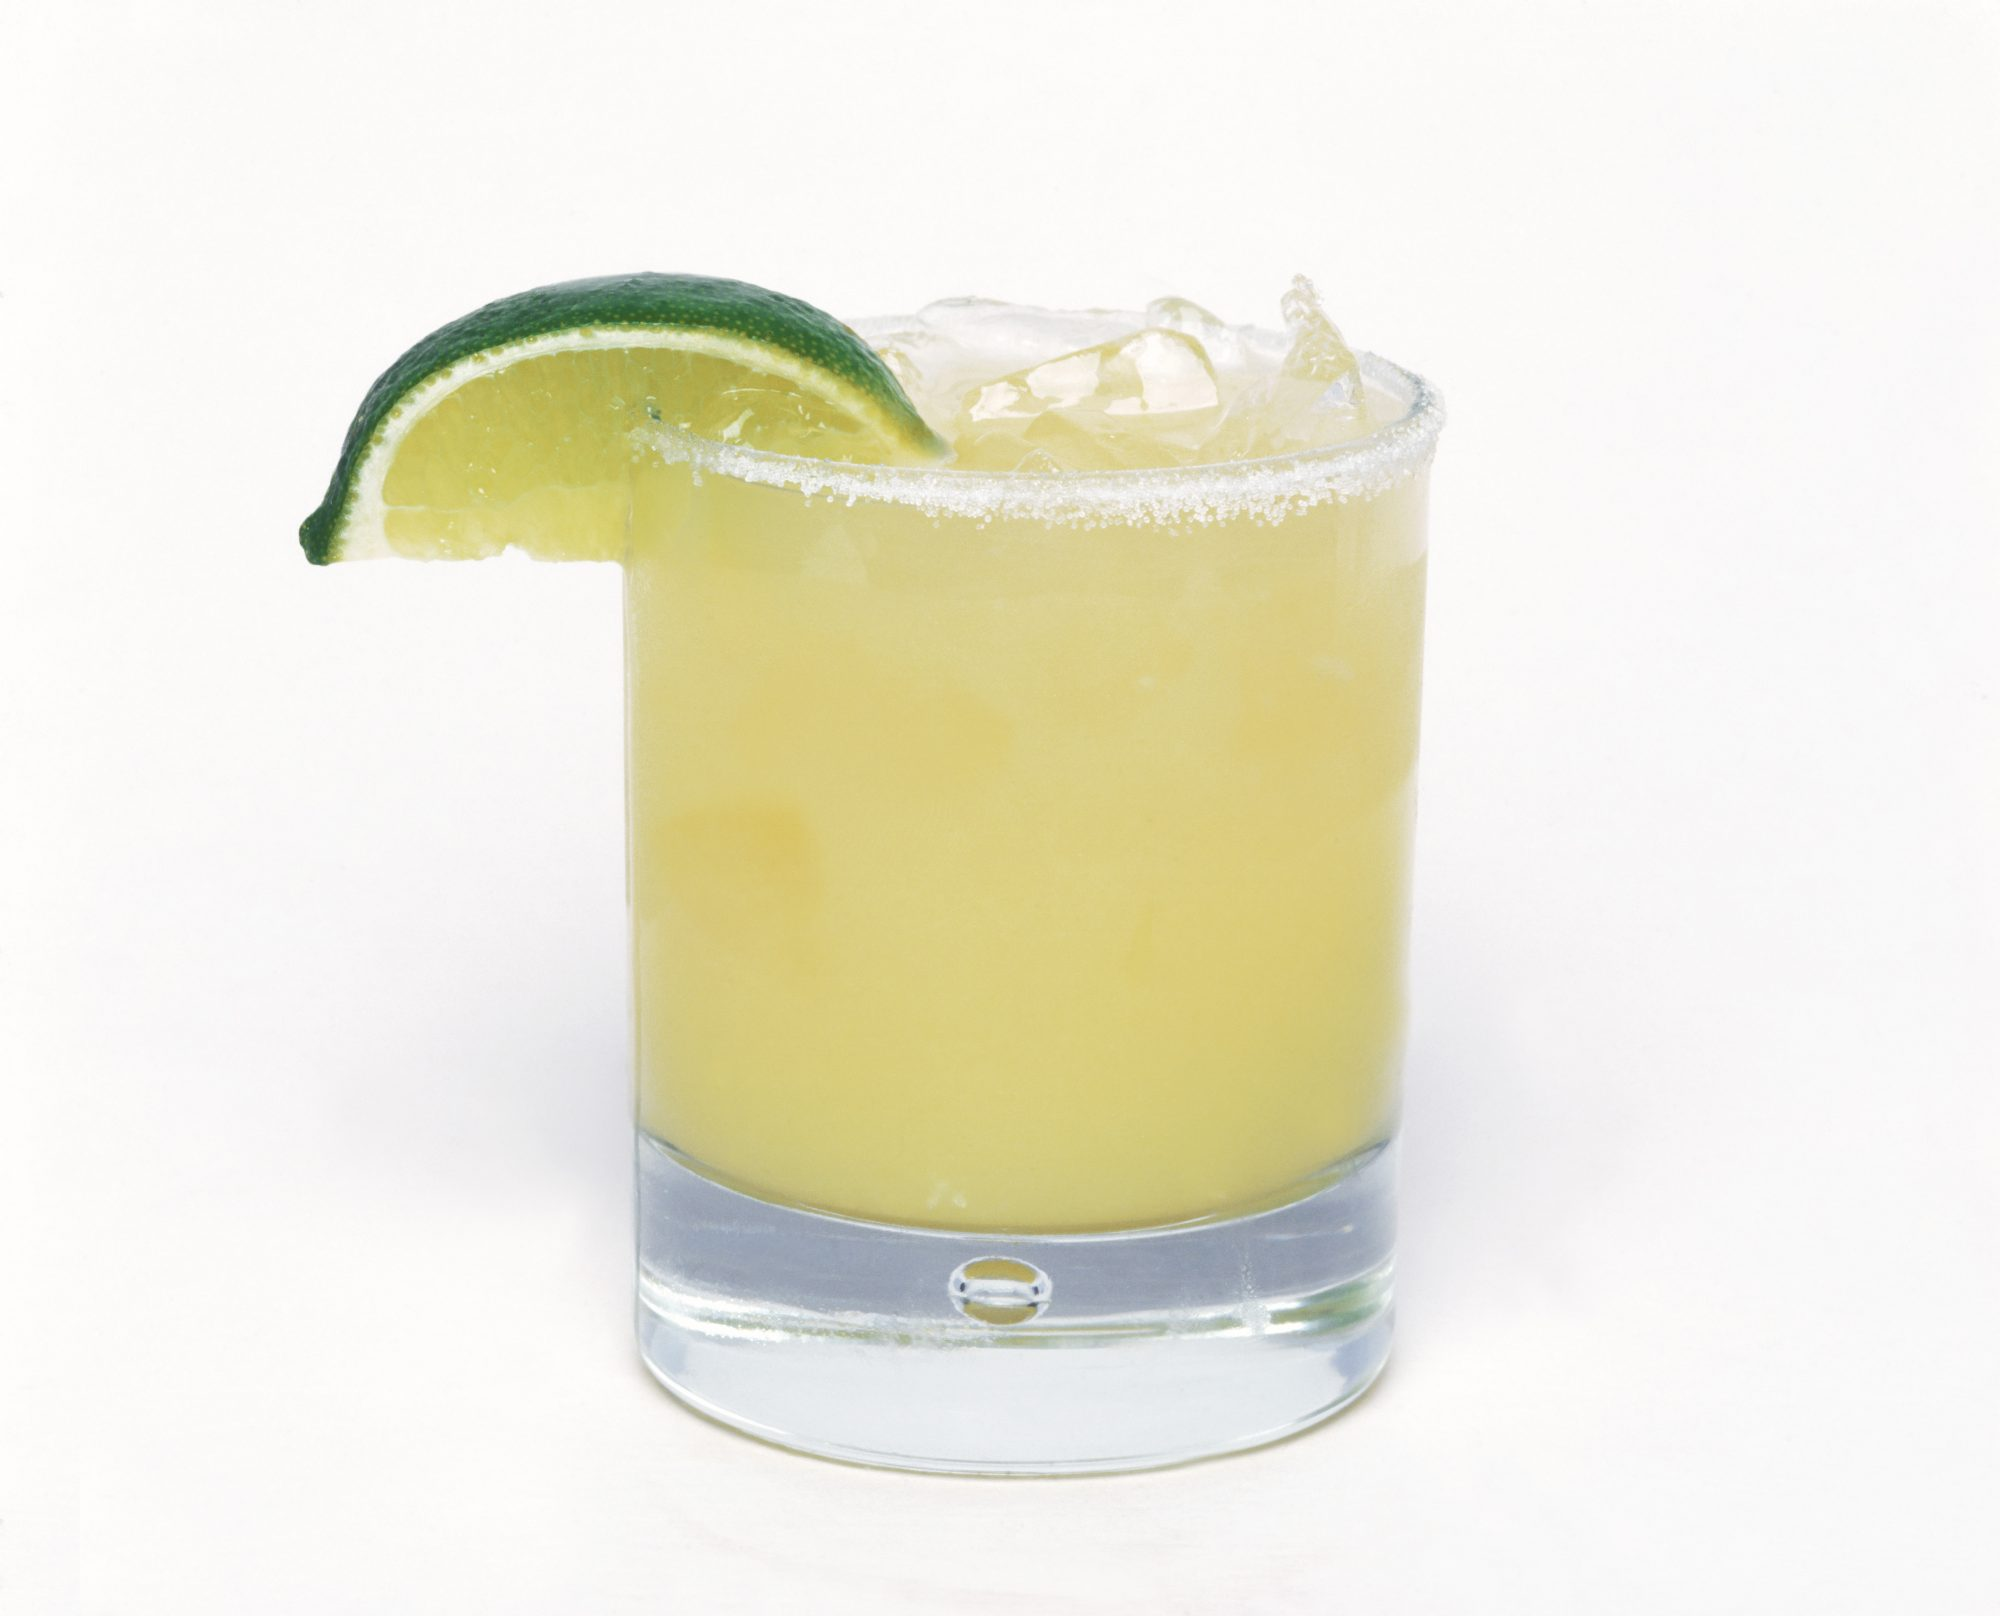 getty-margarita-image